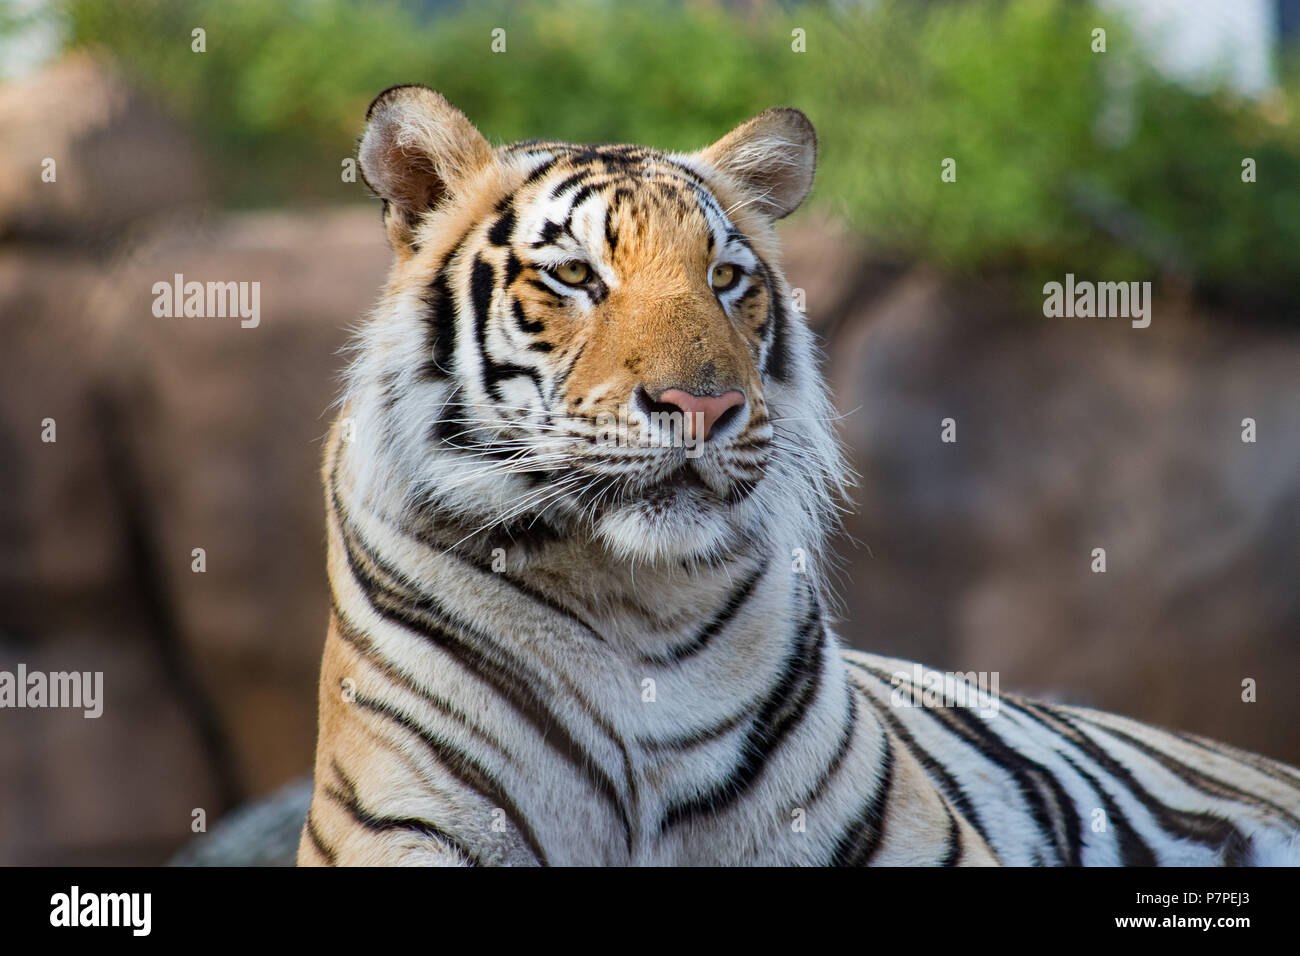 Louisiana State University's Live Mascot , Mike the Tiger. This tiger is LSU's 7th live mascot. Such a powerful and beautiful animal. - Stock Image